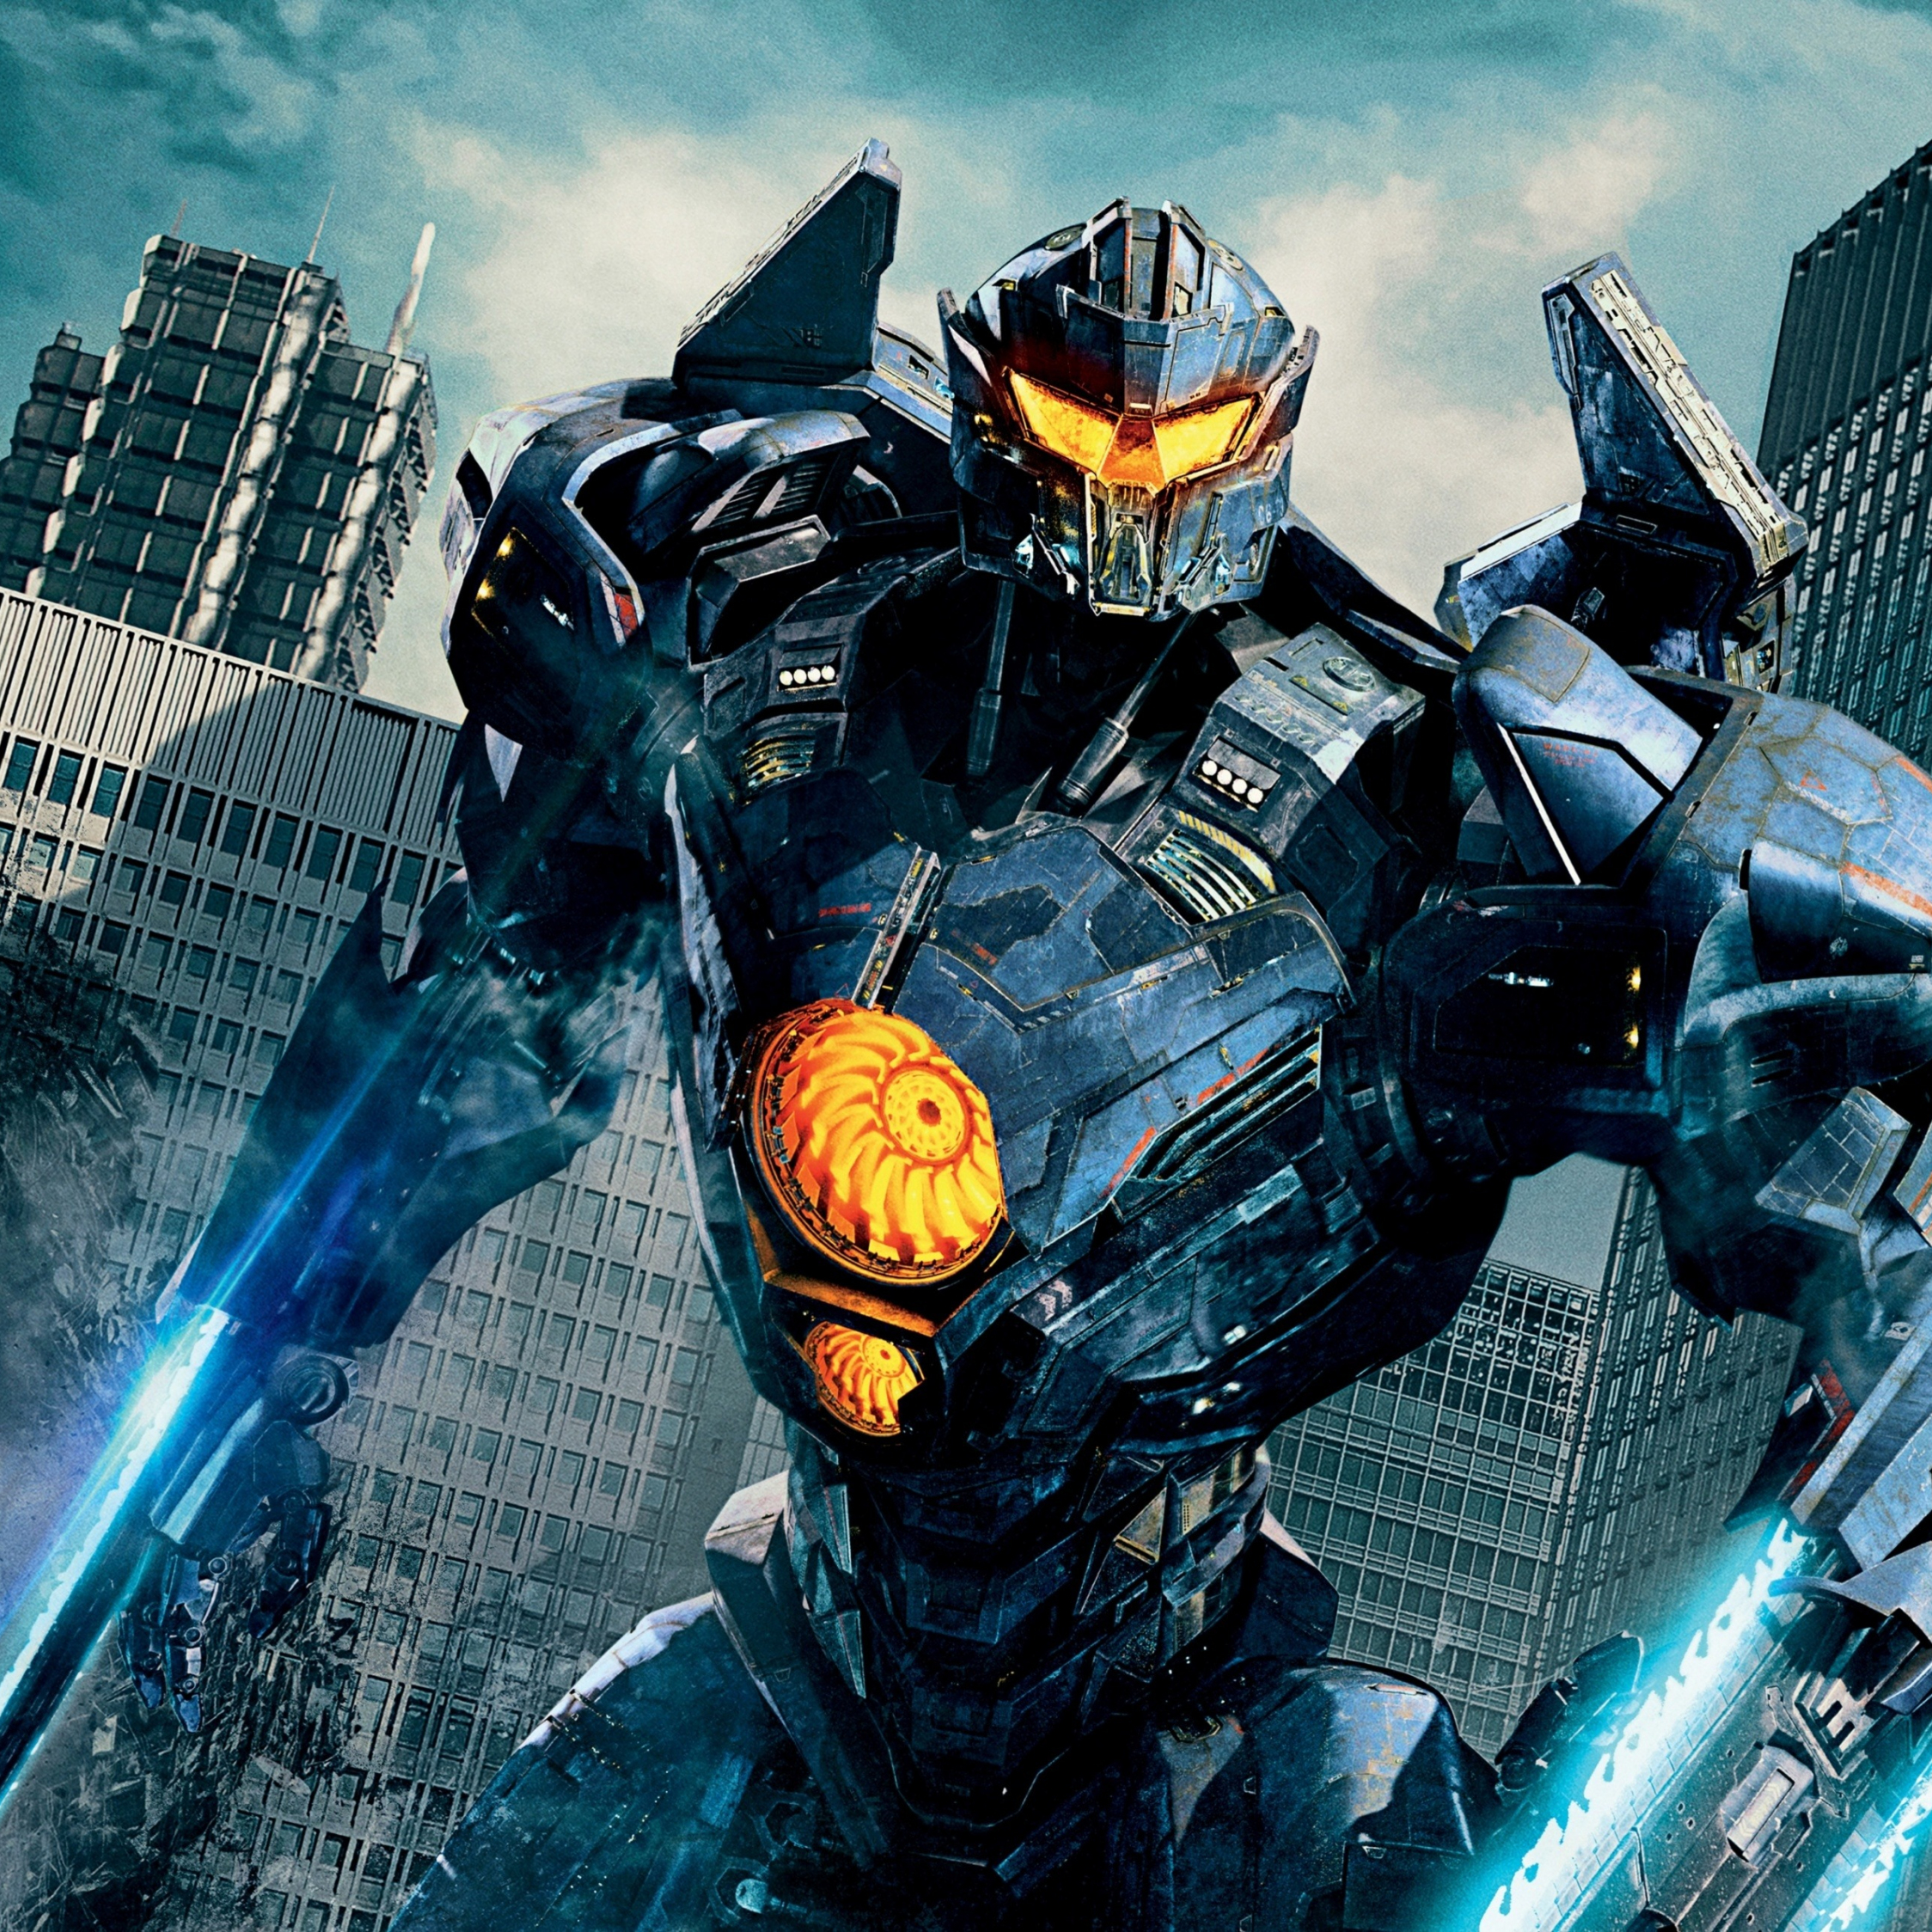 Cool Cars Wallpaper For Mobile Download 2248x2248 Wallpaper Gipsy Avenger Pacific Rim